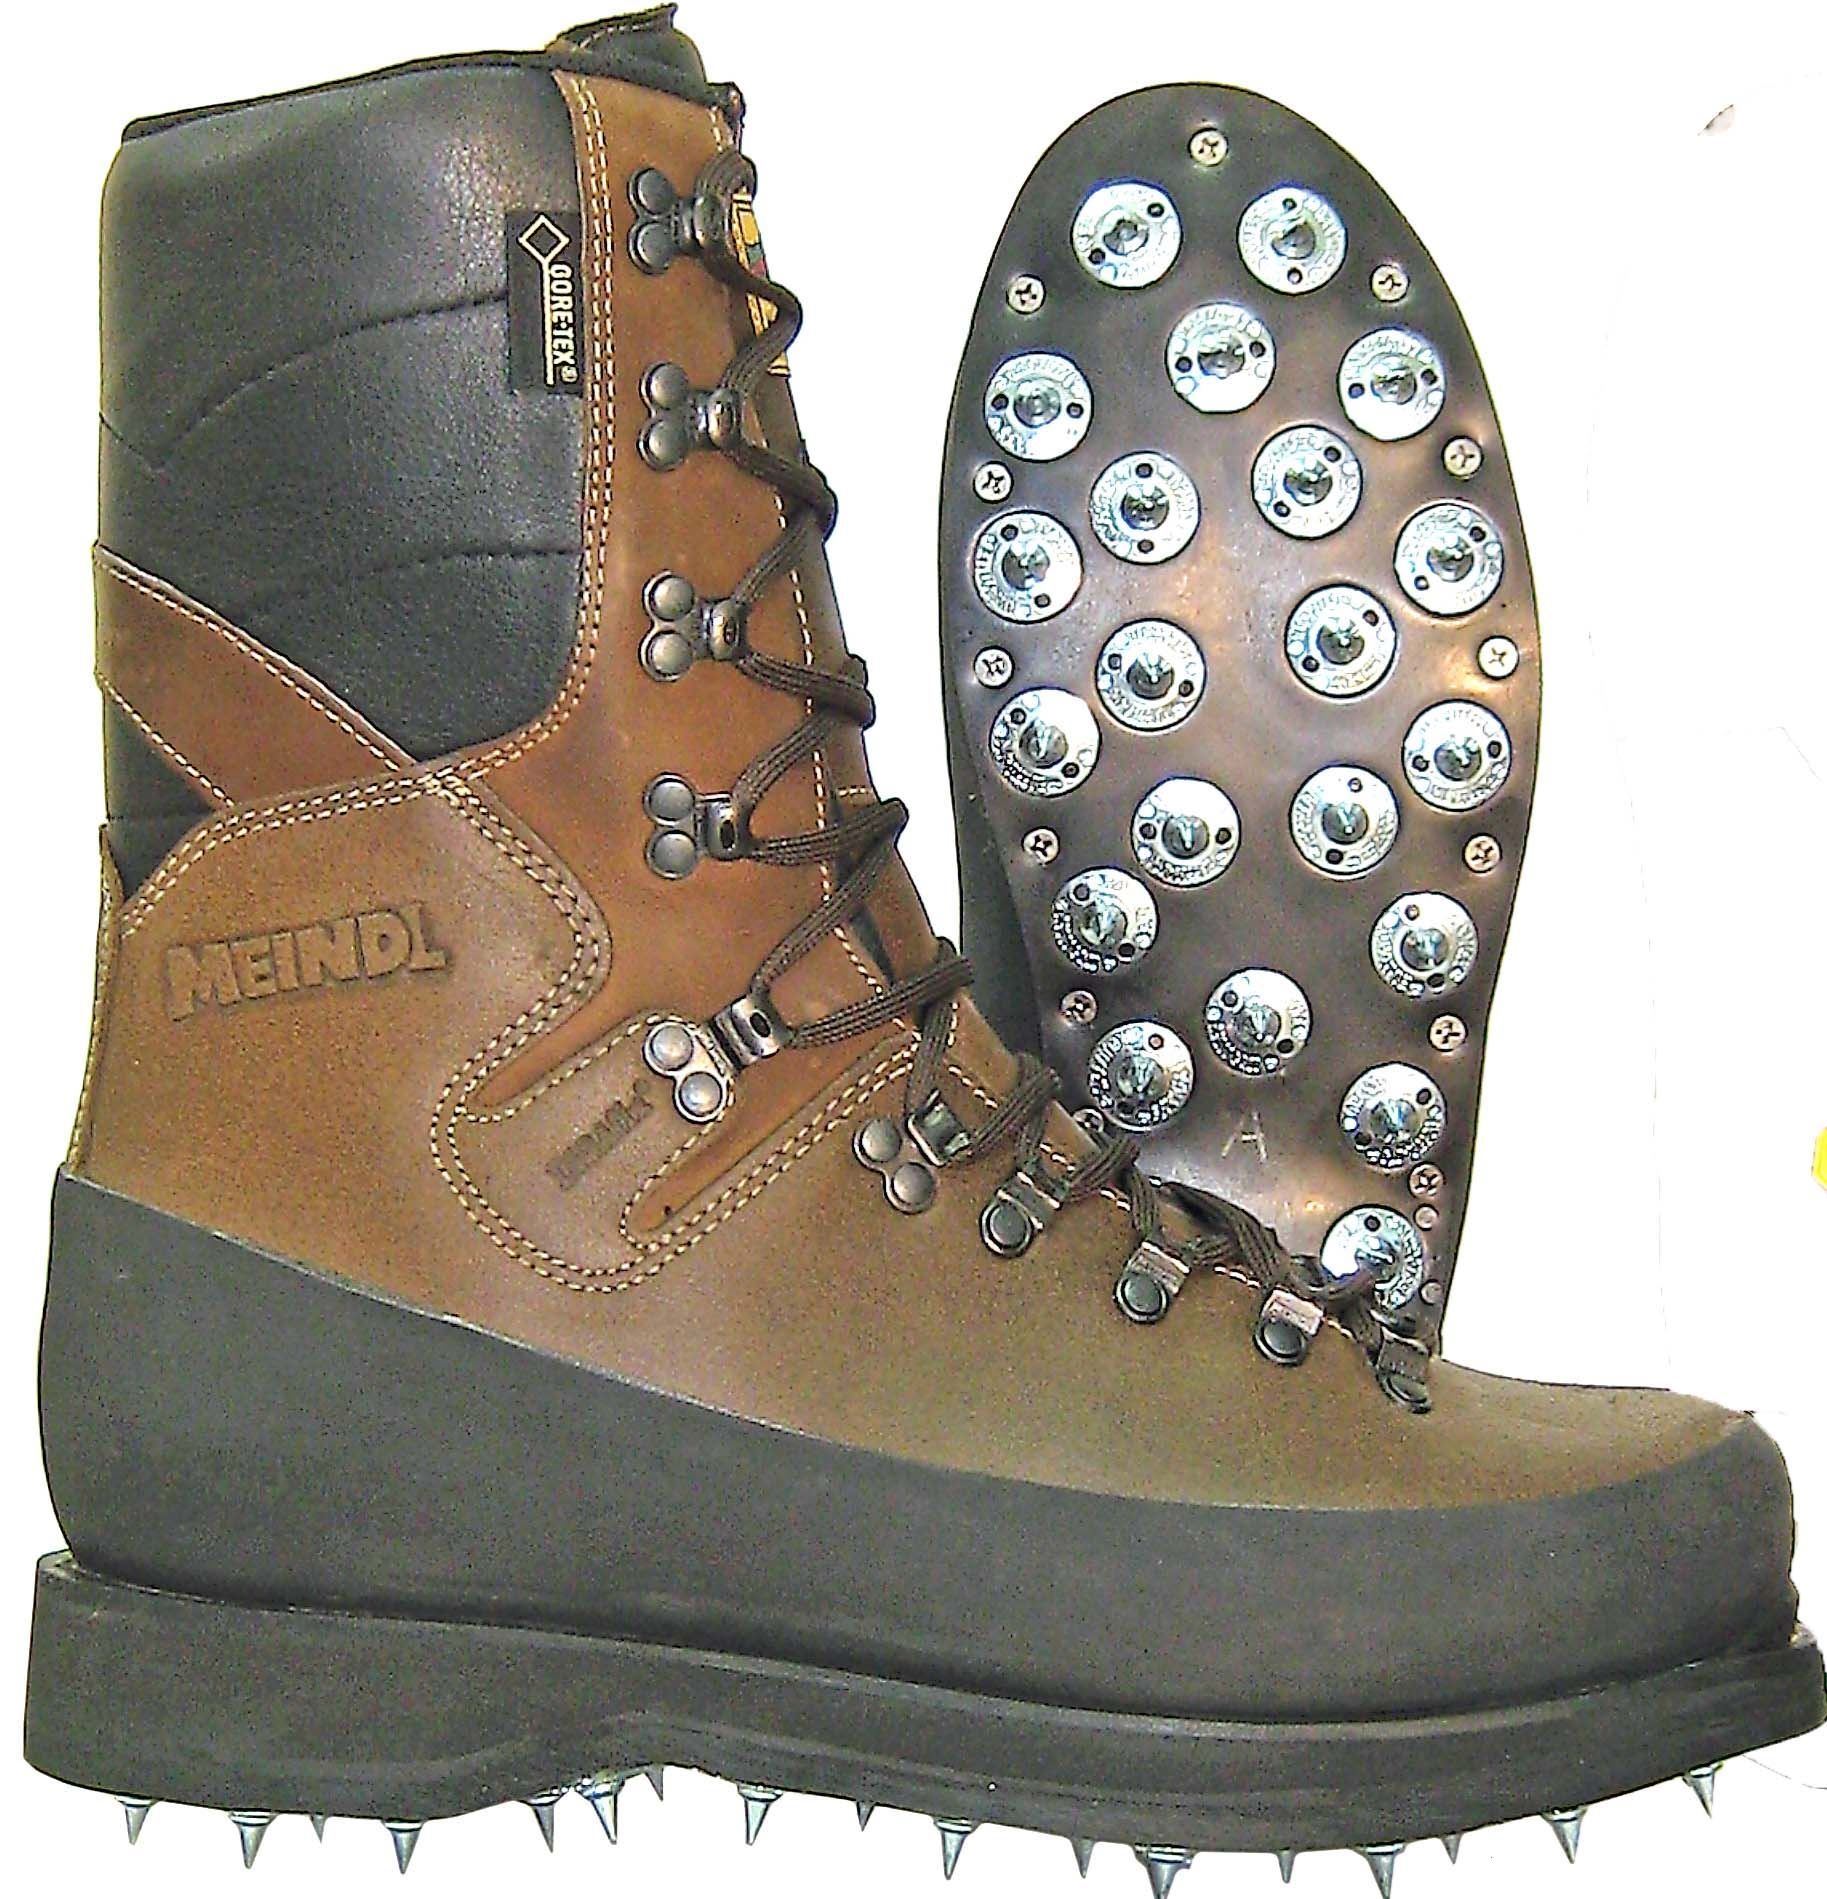 Meindl Calk Boot Hoffman Boots For All Your Boot Needs